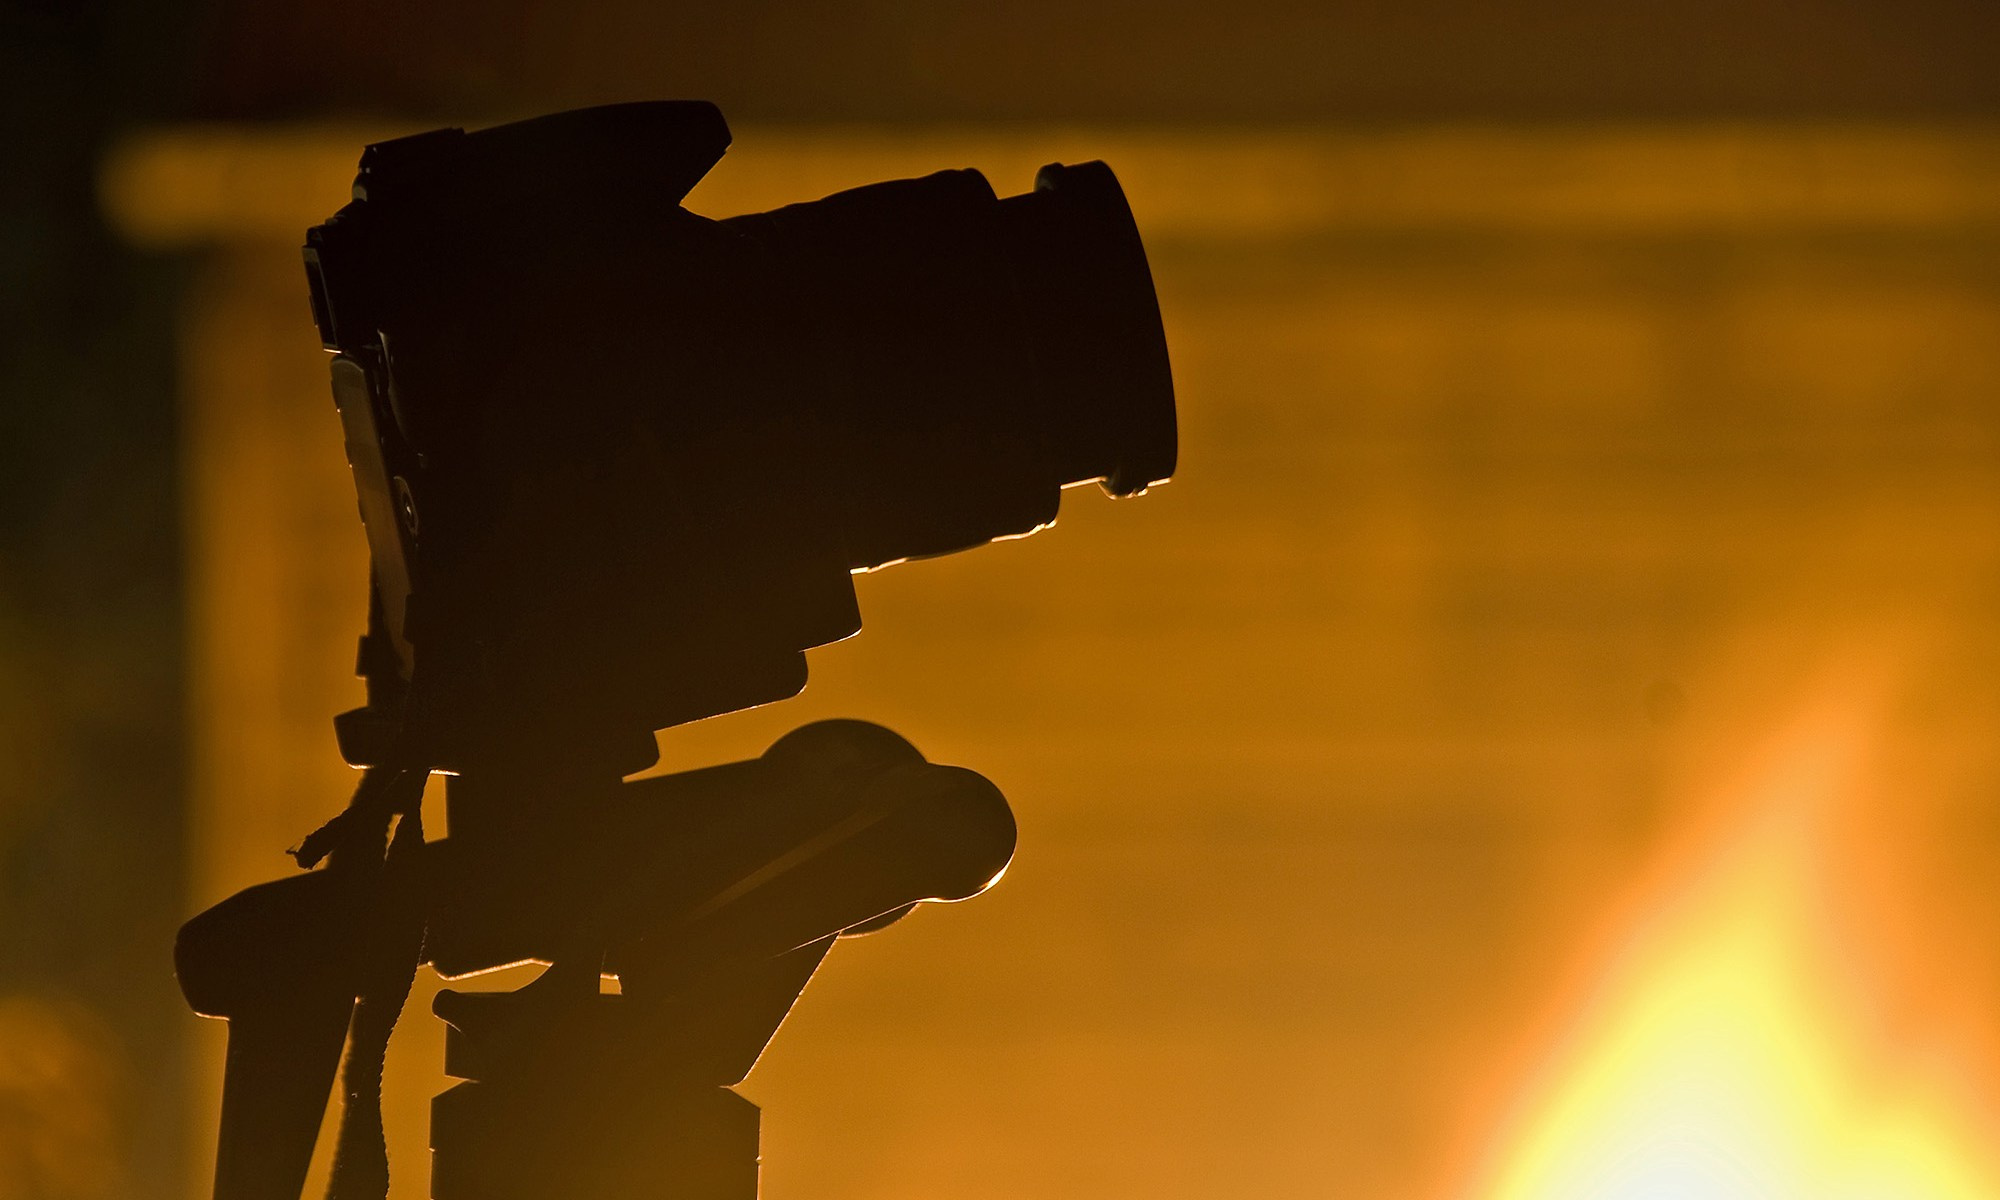 Camera Silhouette with Fire Background